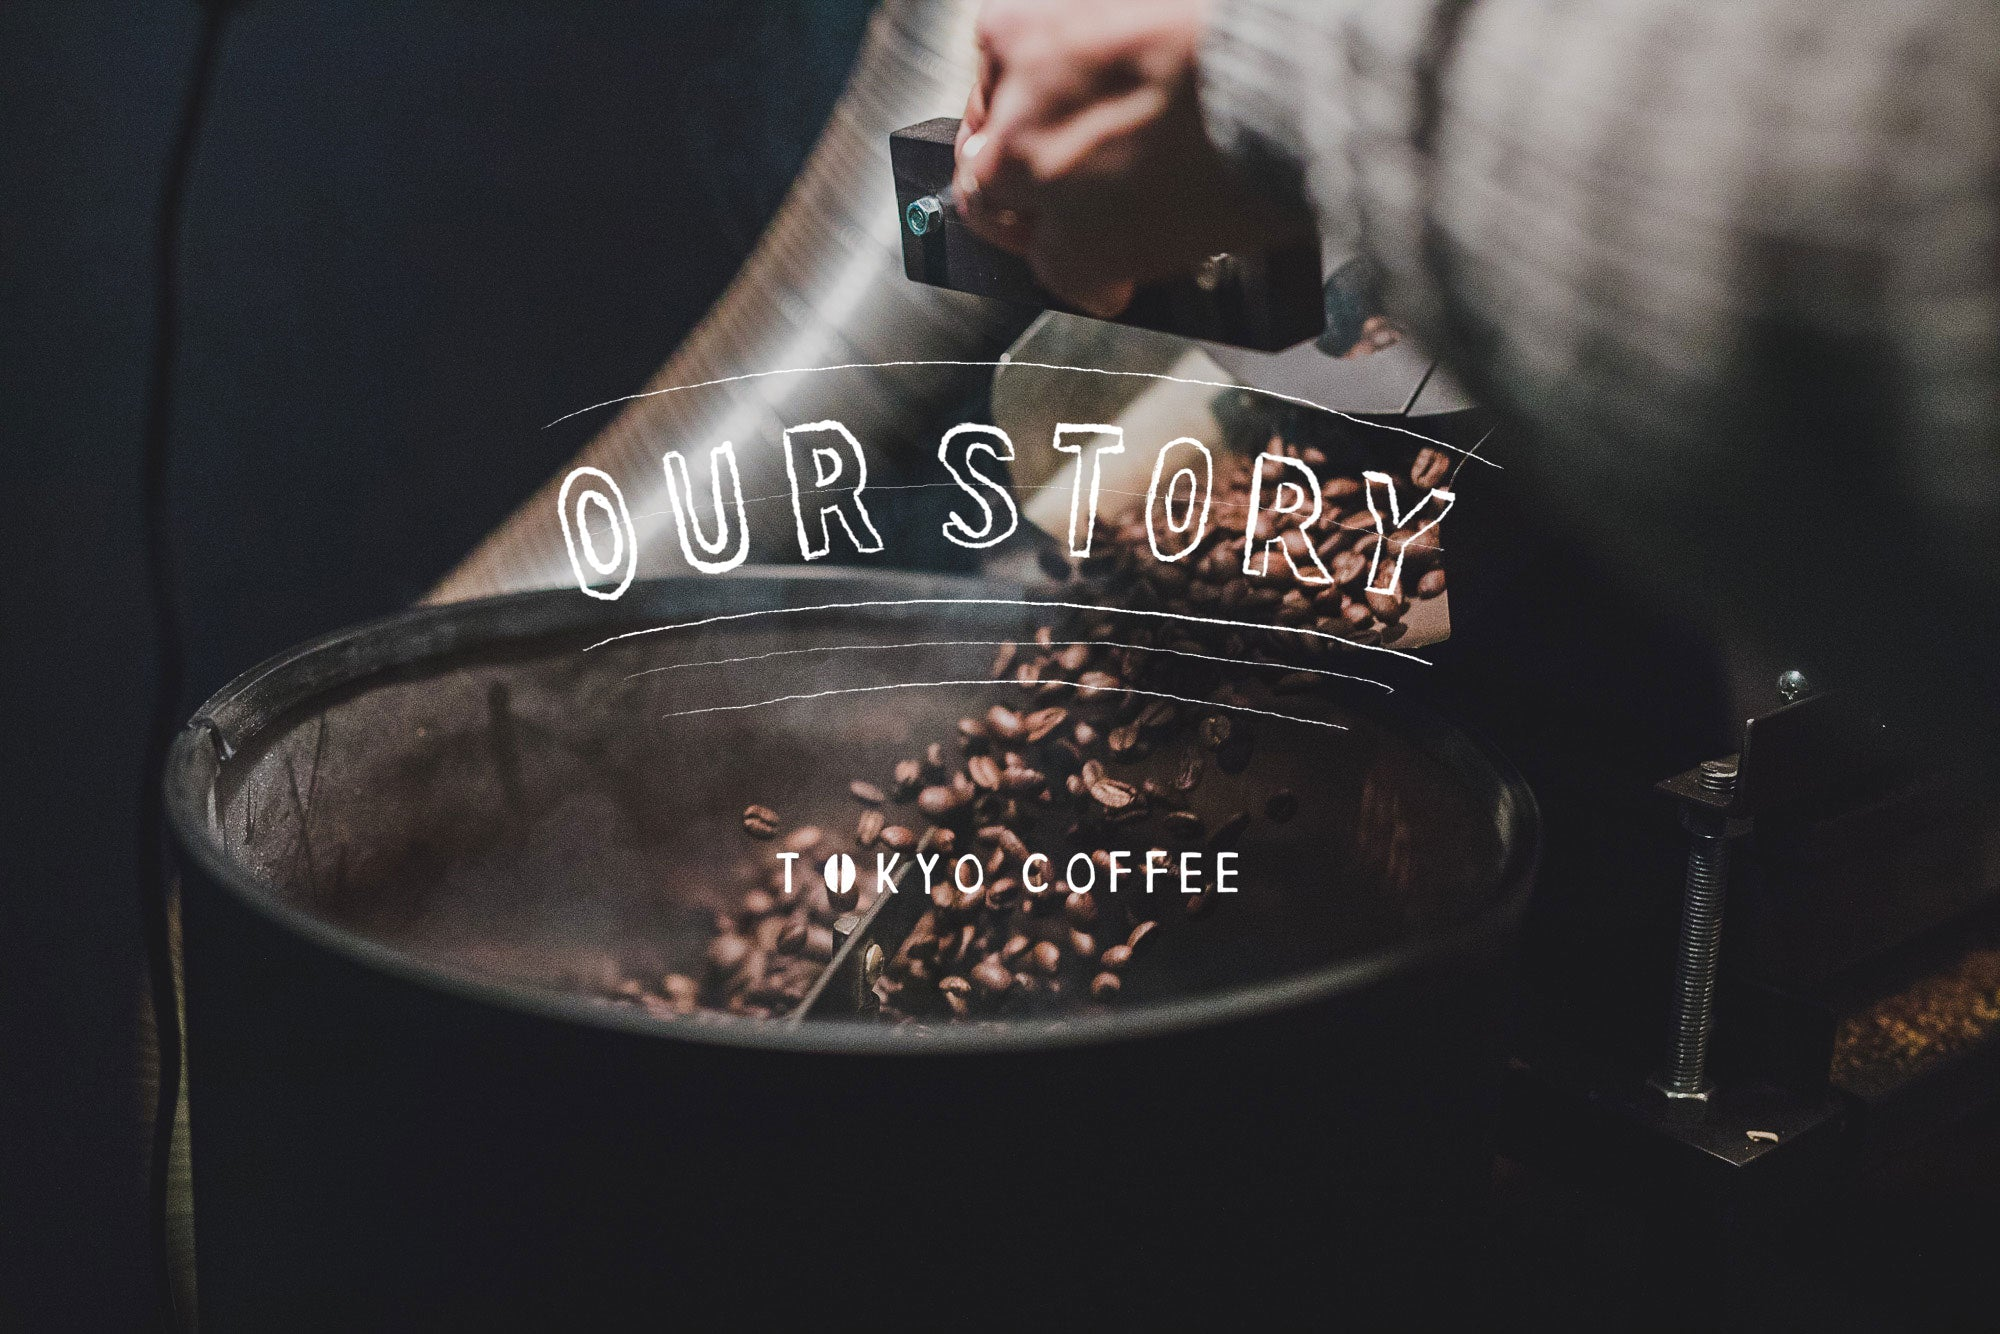 Tokyo Coffee Our Story Roaster Image 東京コーヒー ストーリー 焙煎機